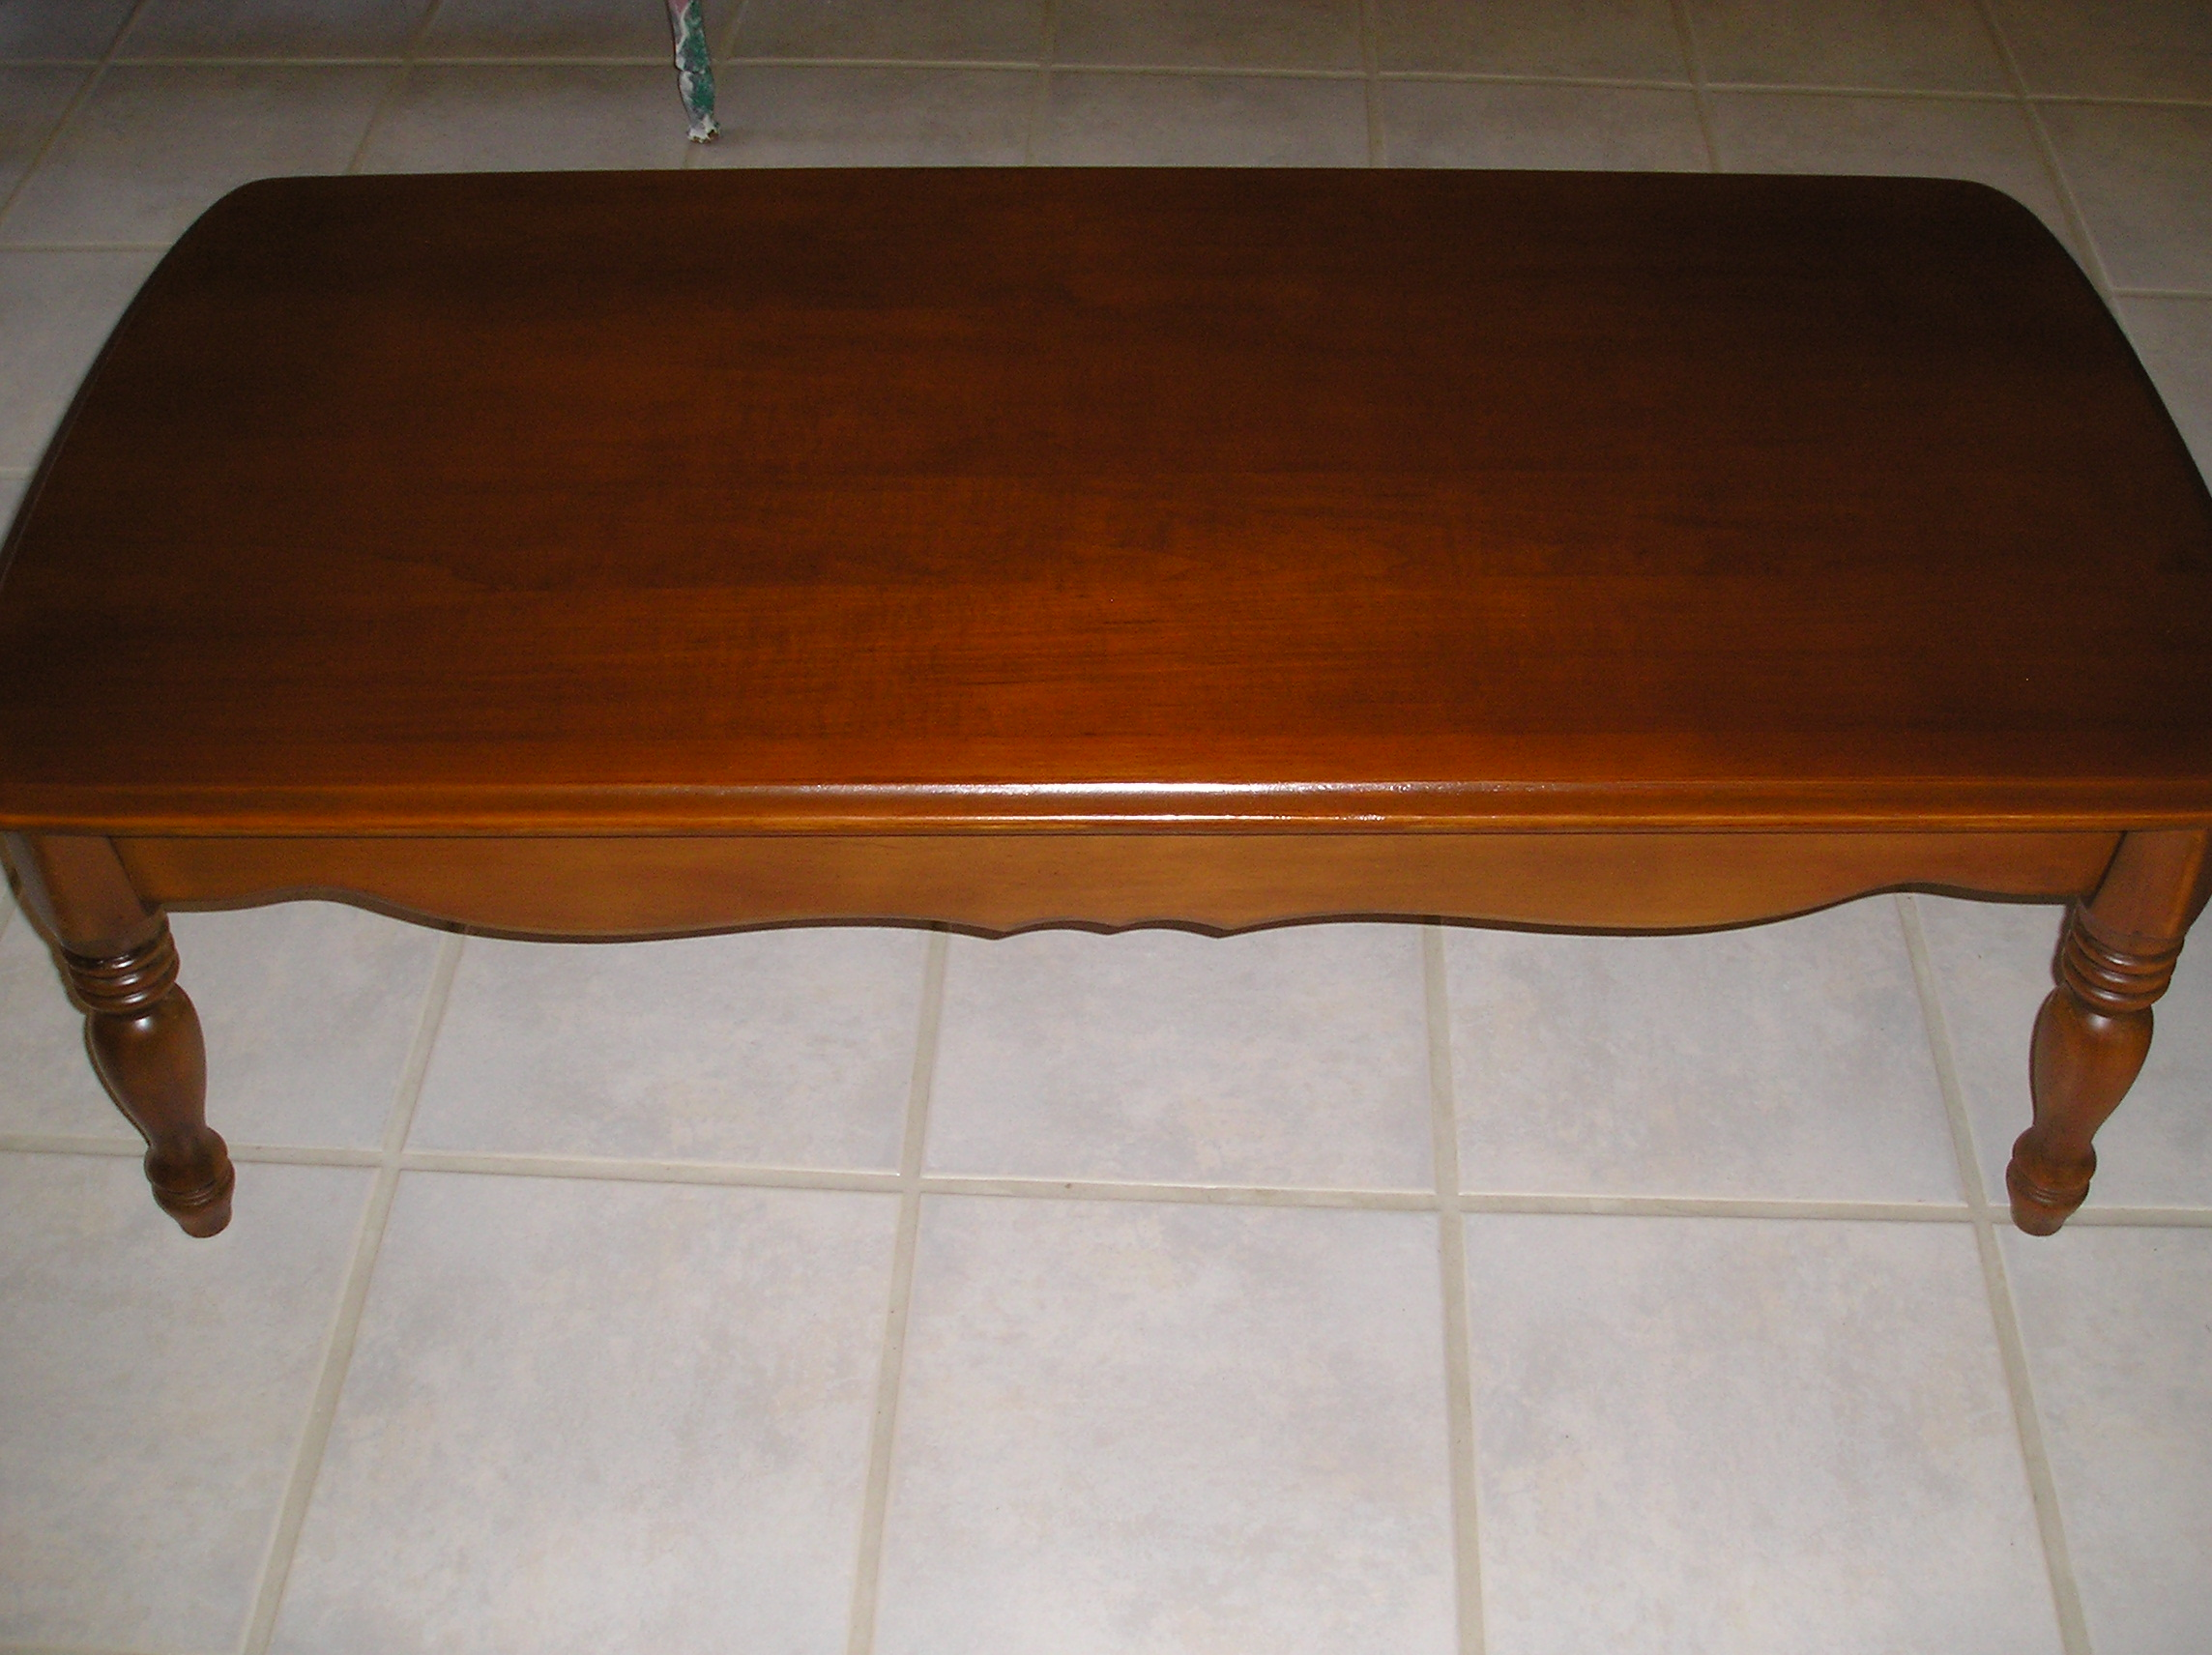 Refinishing A Coffee Table Furniture Refinishing Guide